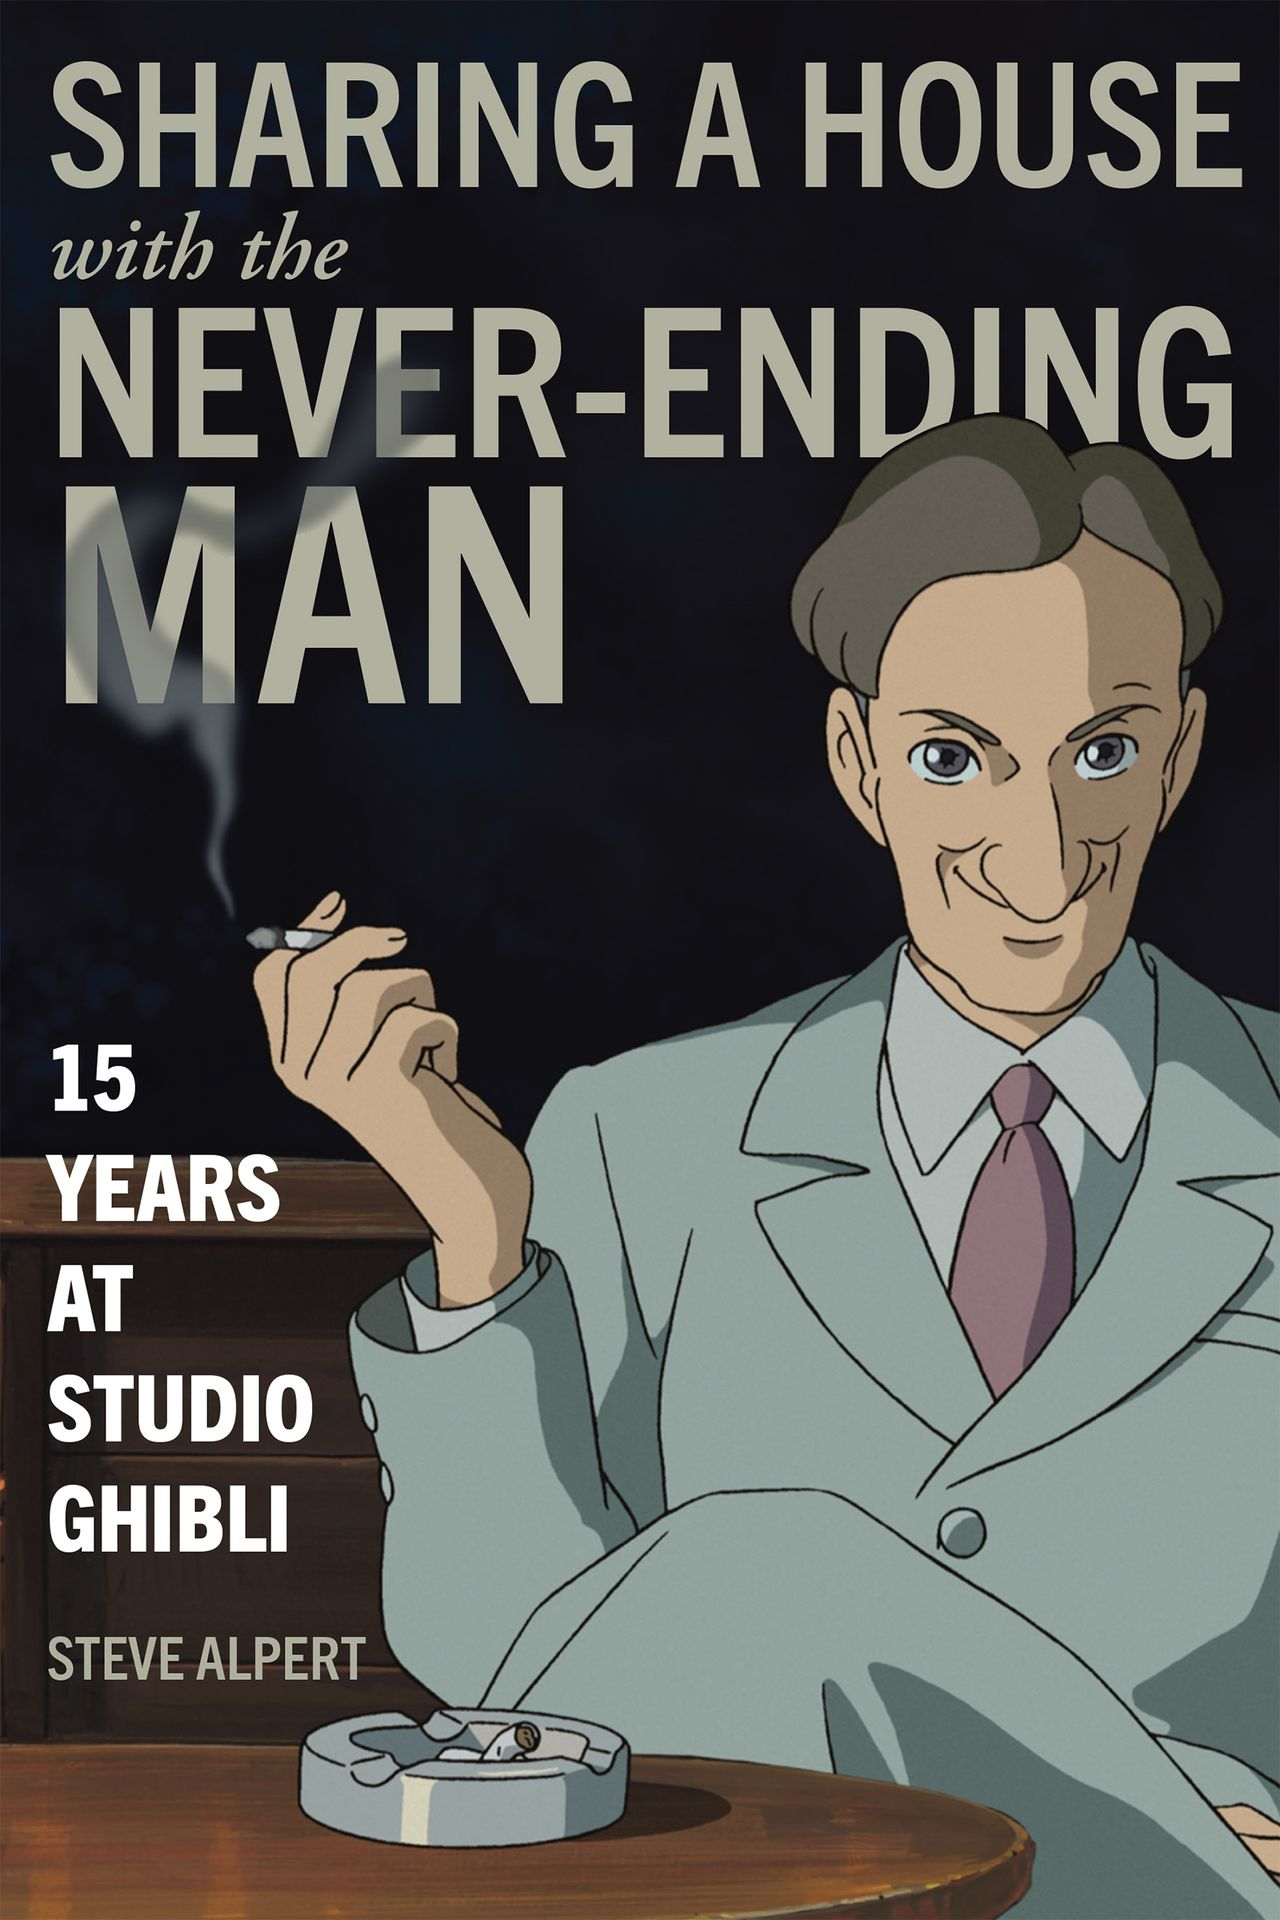 Sharing a House with the Never-Ending Man: 15 Years at Studio Ghibli (Compartir una casa con el hombre interminable: 15 años en Studio Ghibli), de Steve Alpert, fue publicado el 16 de junio de 2020 por la editorial Stone Bridge Press.